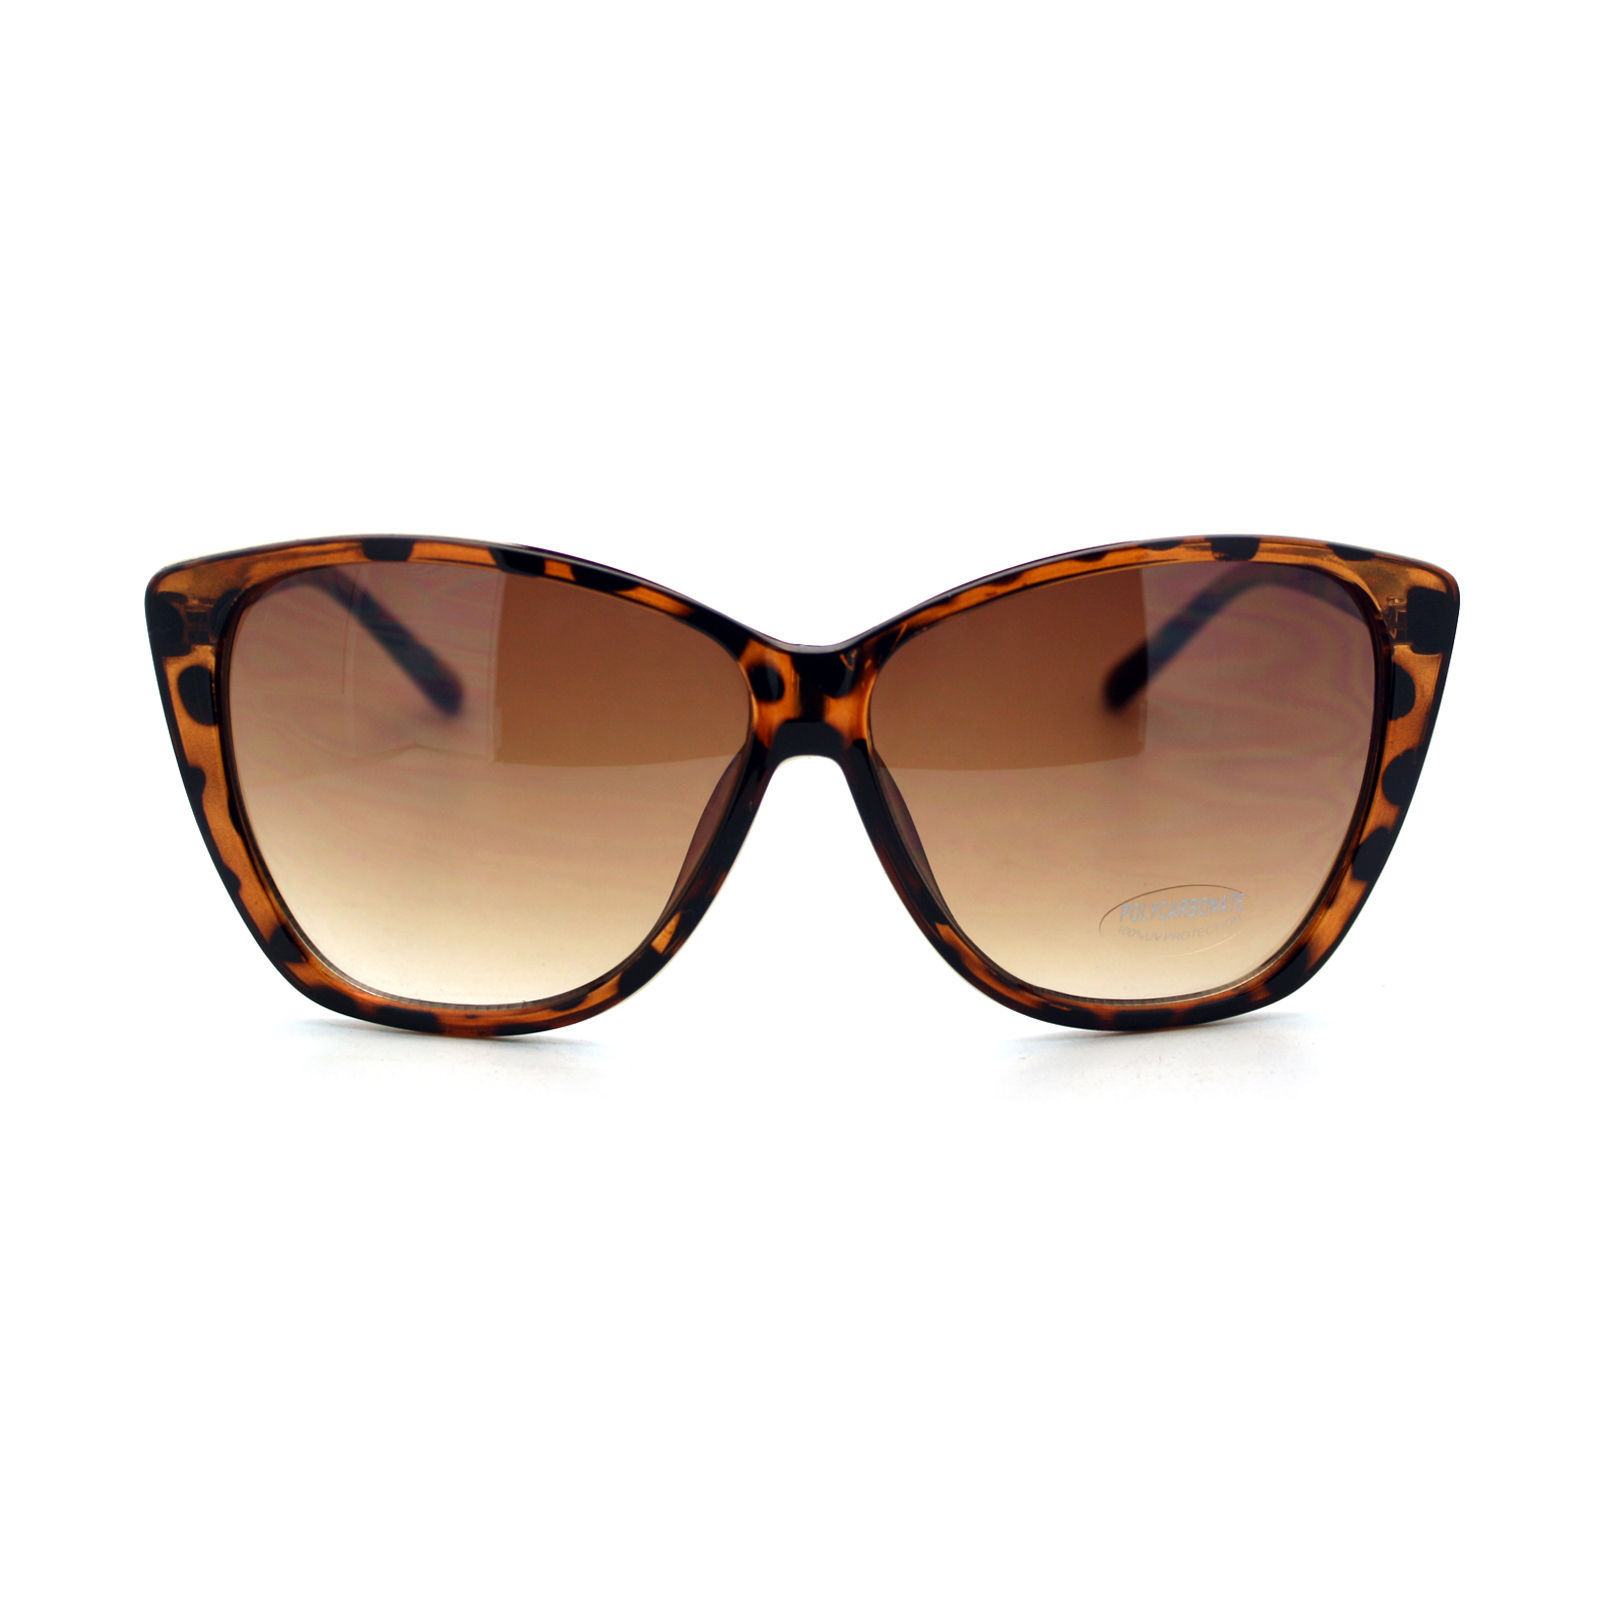 Oversized Square Butterfly Frame Sunglasses Womens Fashion Eyewear